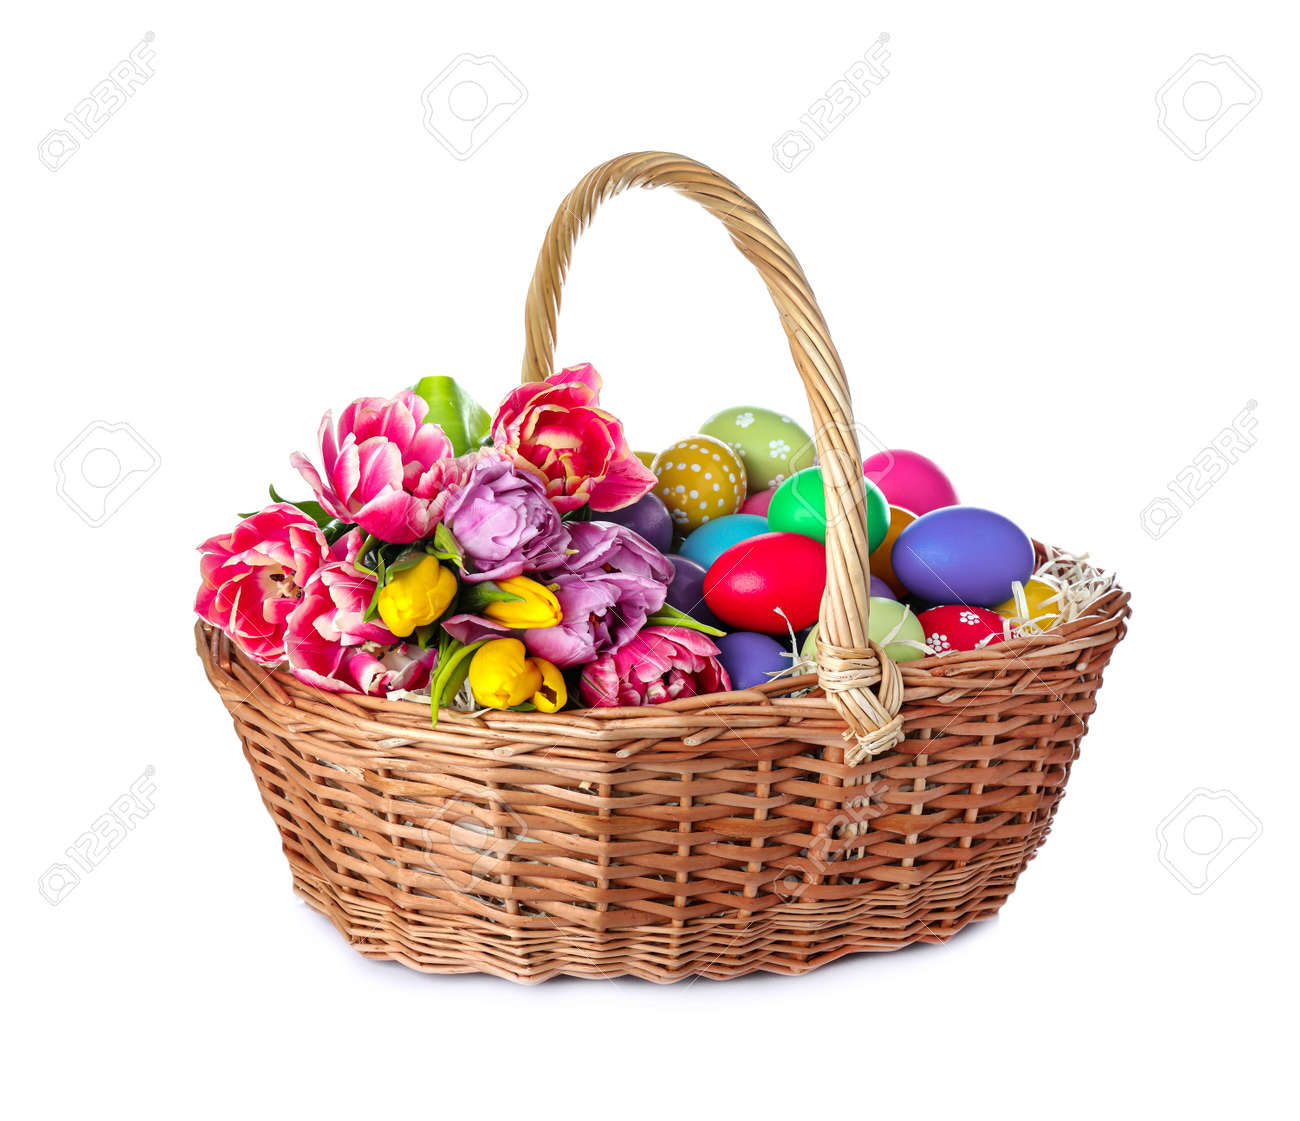 Wicker basket with bright painted Easter eggs and spring flowers on white background - 165362404